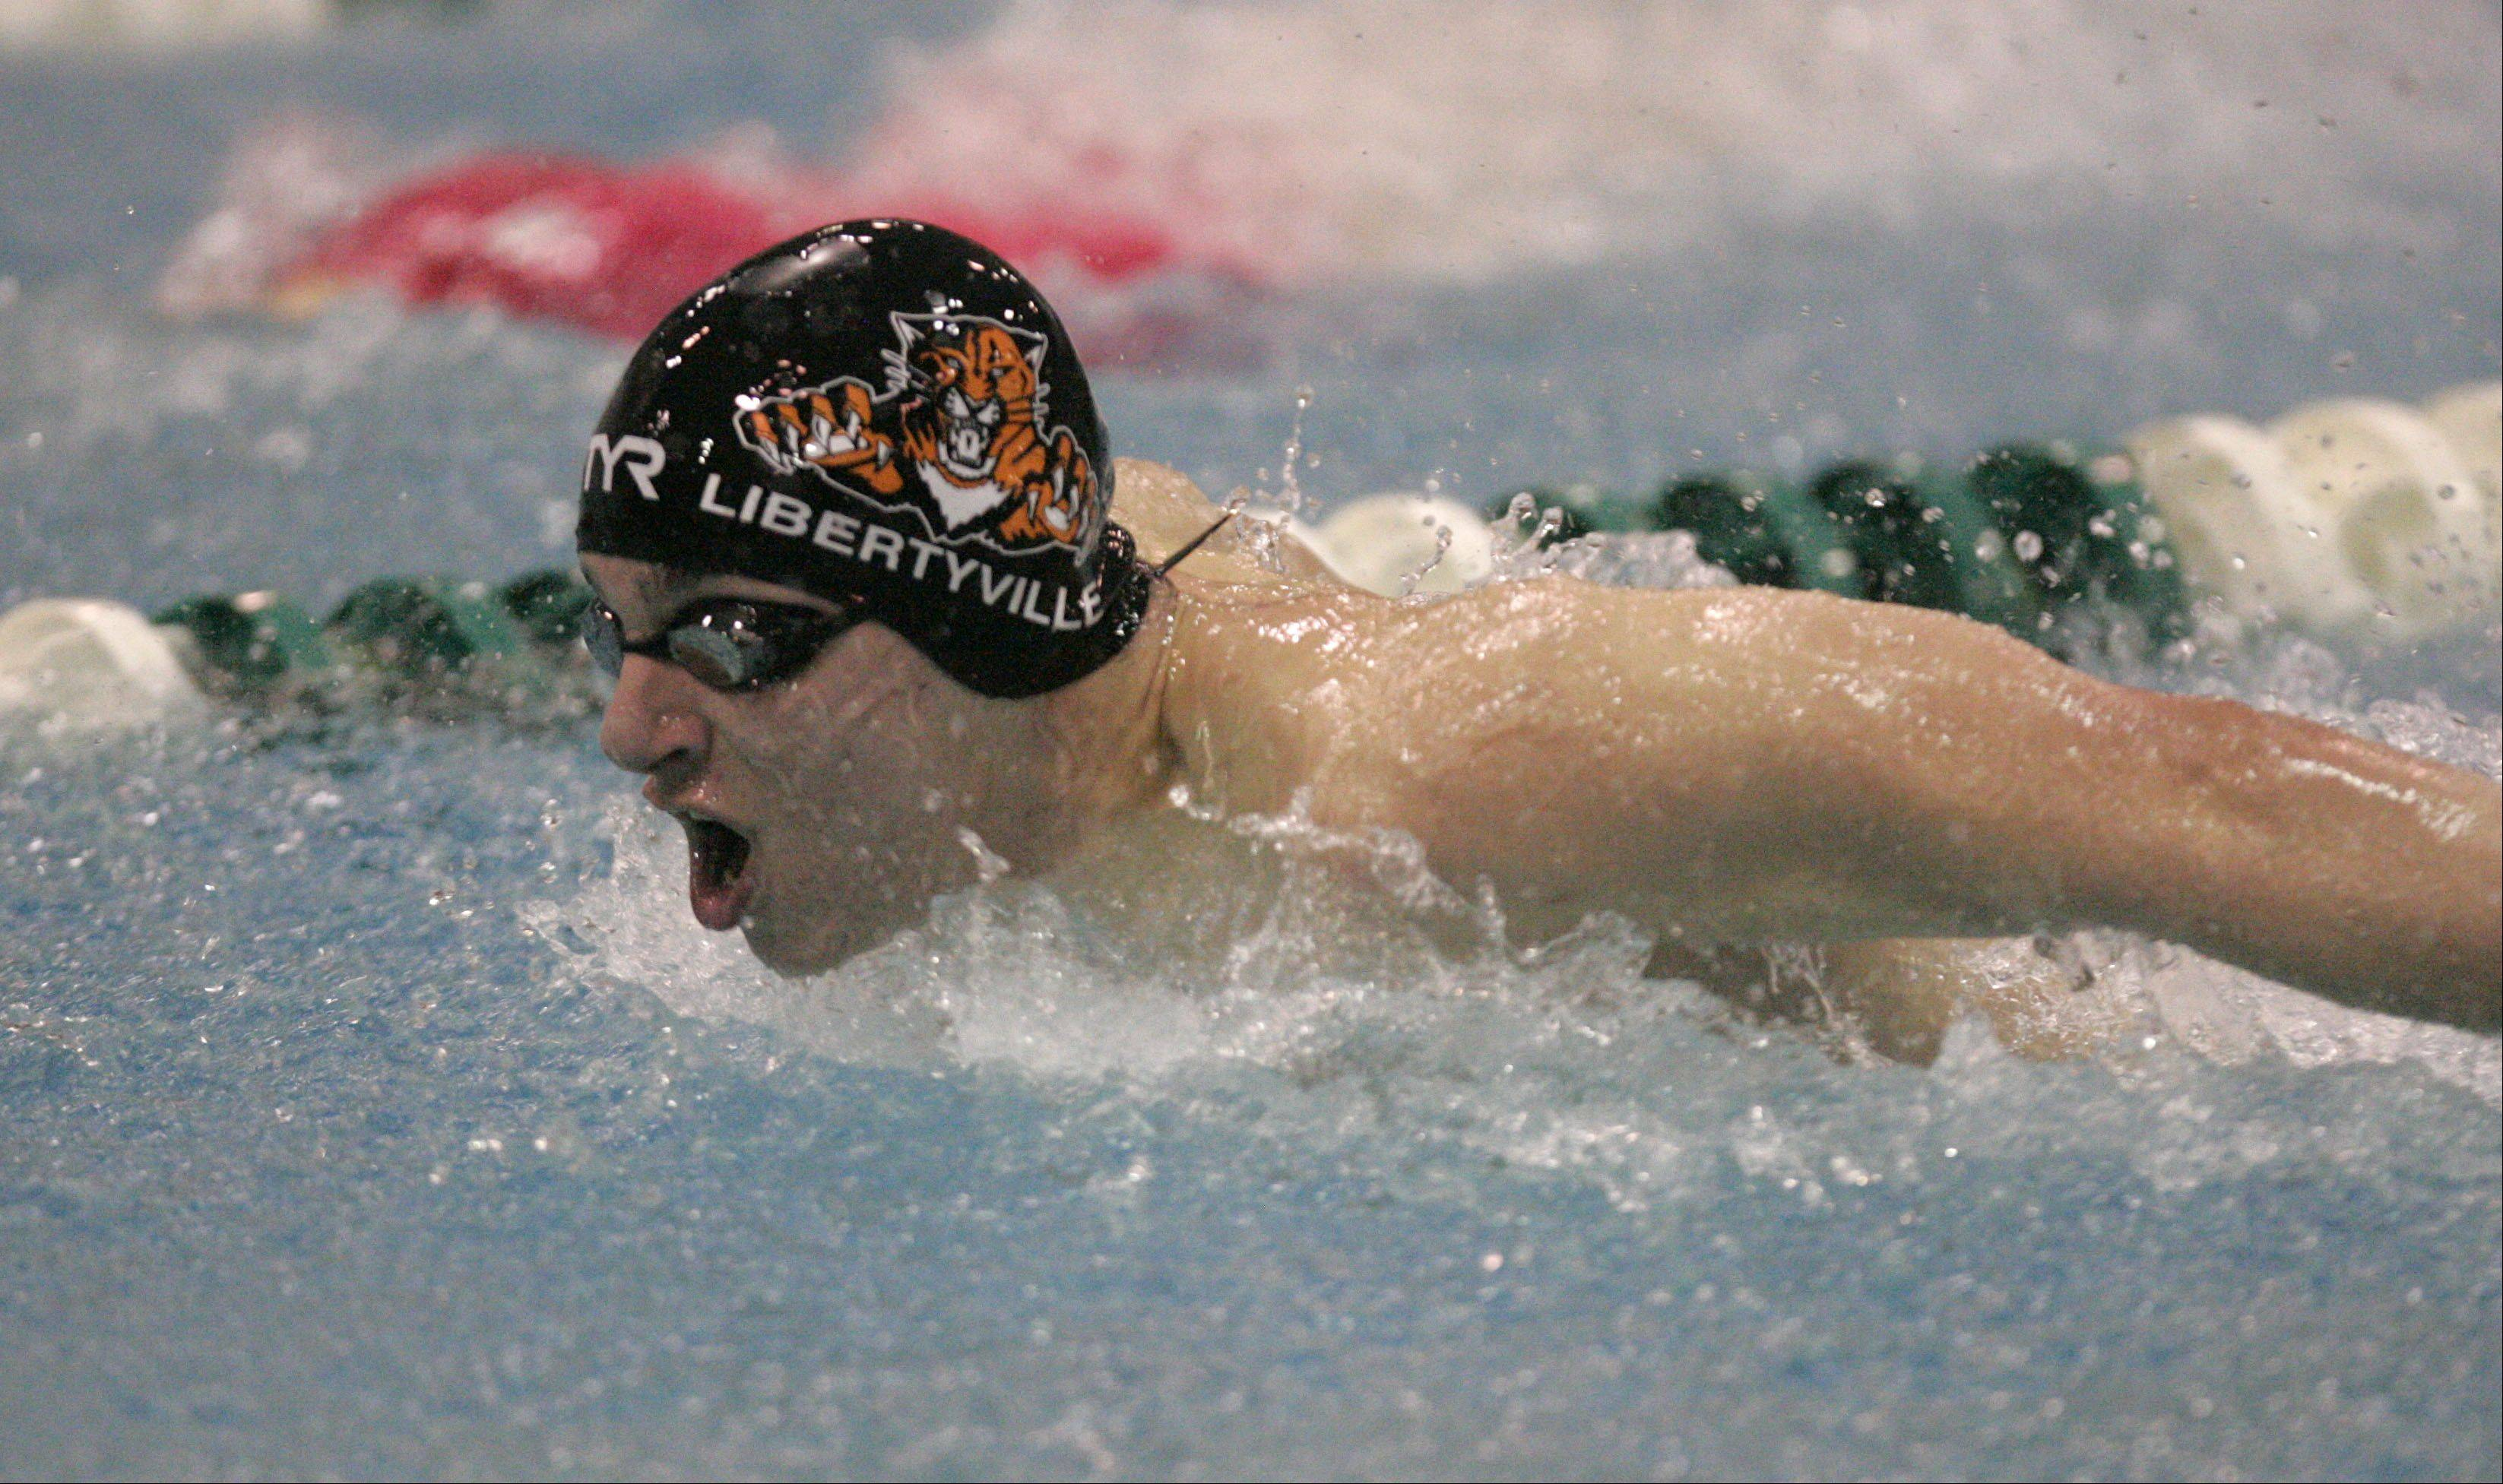 Brian Hill/bhill@dailyherald.comMatt Harrington of Libertyville competes in the 100-yard butterfly during the IHSA State Swimming Prelims at New Trier High School in Winnetka Friday.